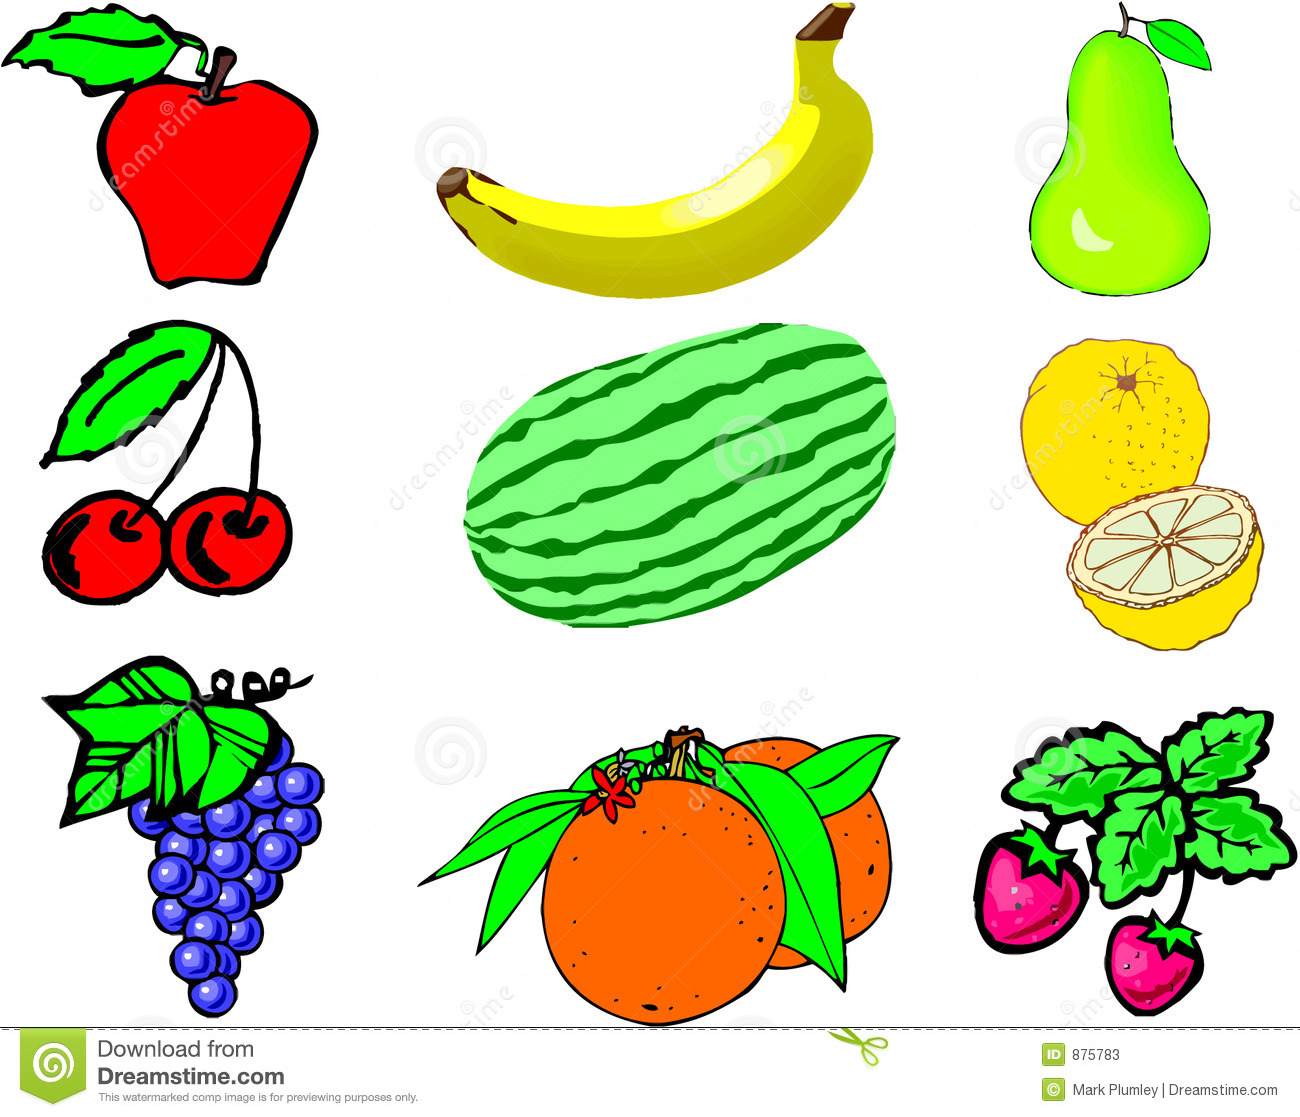 Fruits & Vegetables clipart #10